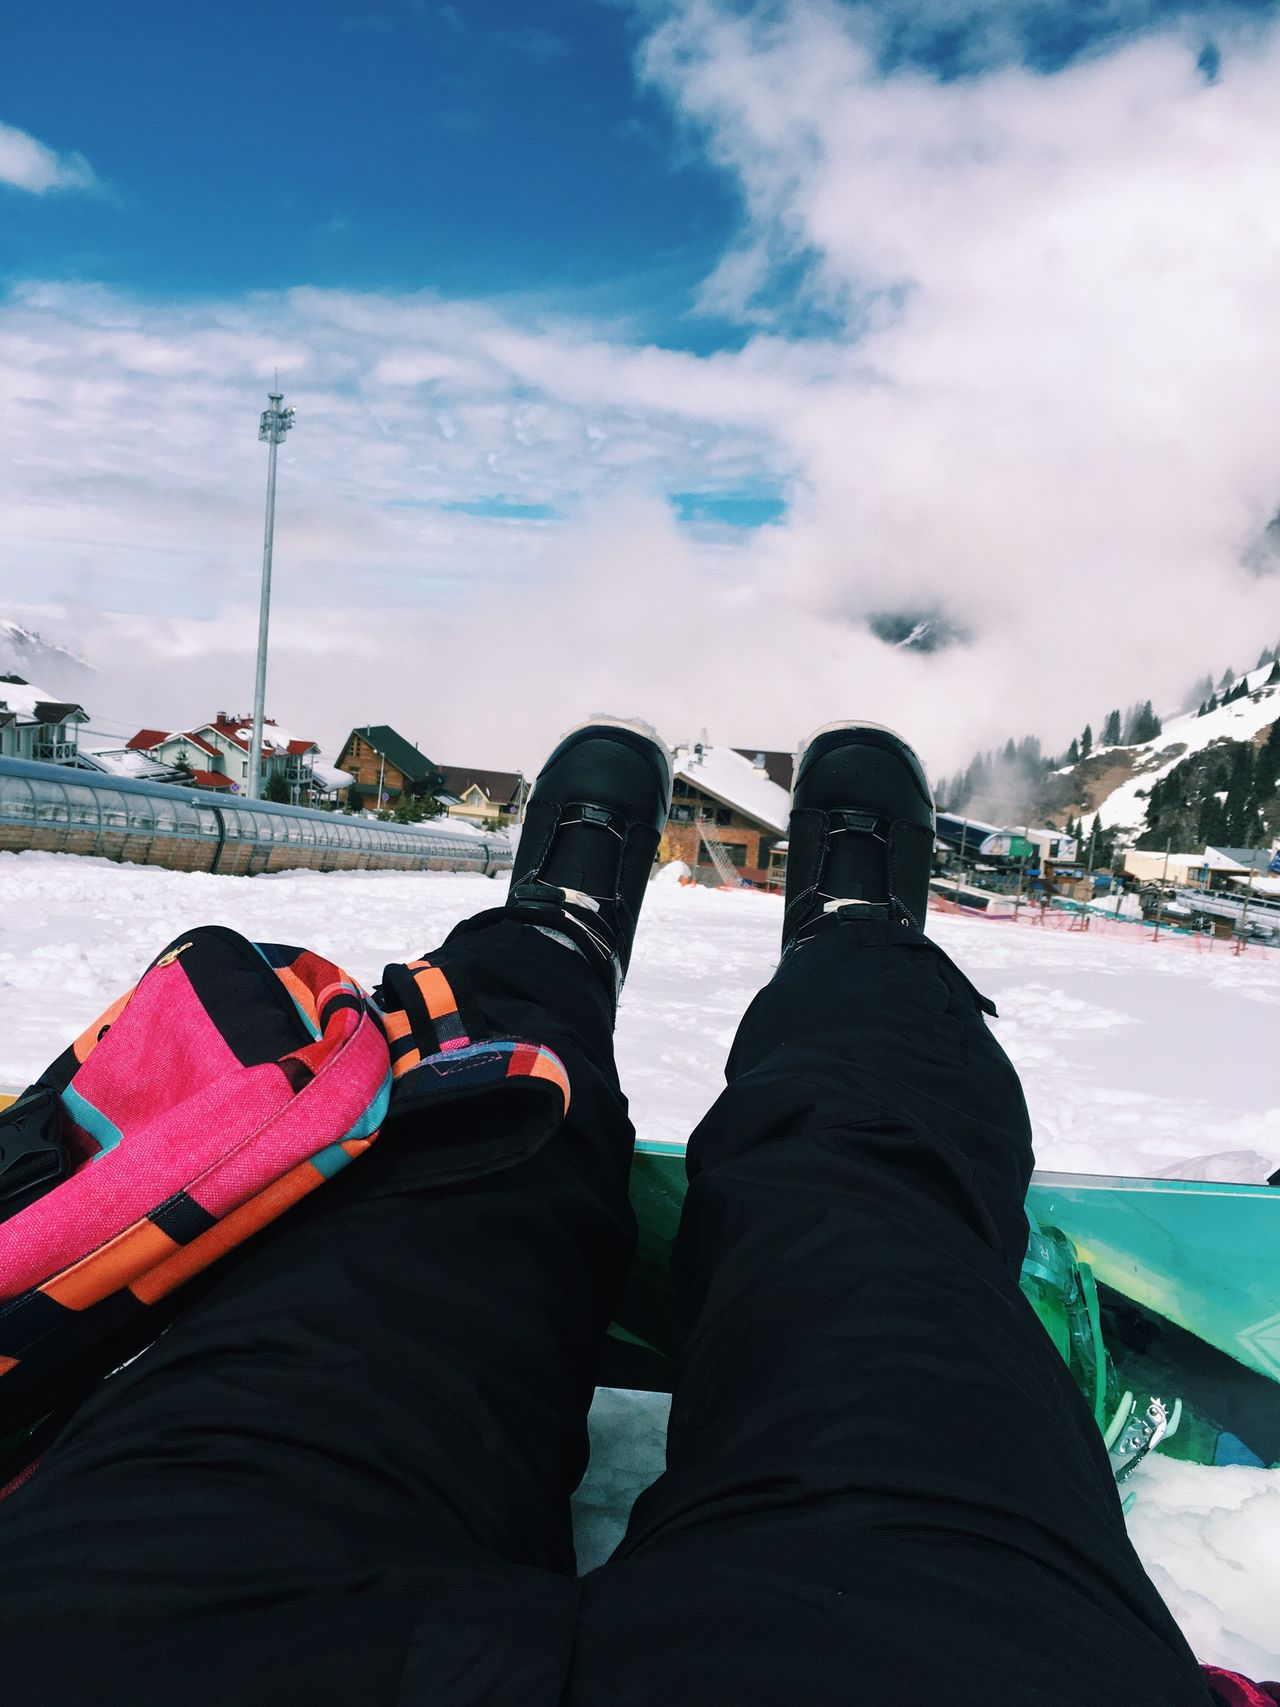 Sky Snow Leisure Activity Winter One Person Cloud - Sky Day Outdoors Low Section Cold Temperature Nature Water Human Leg Snowboarding Human Body Part Ice Skate People